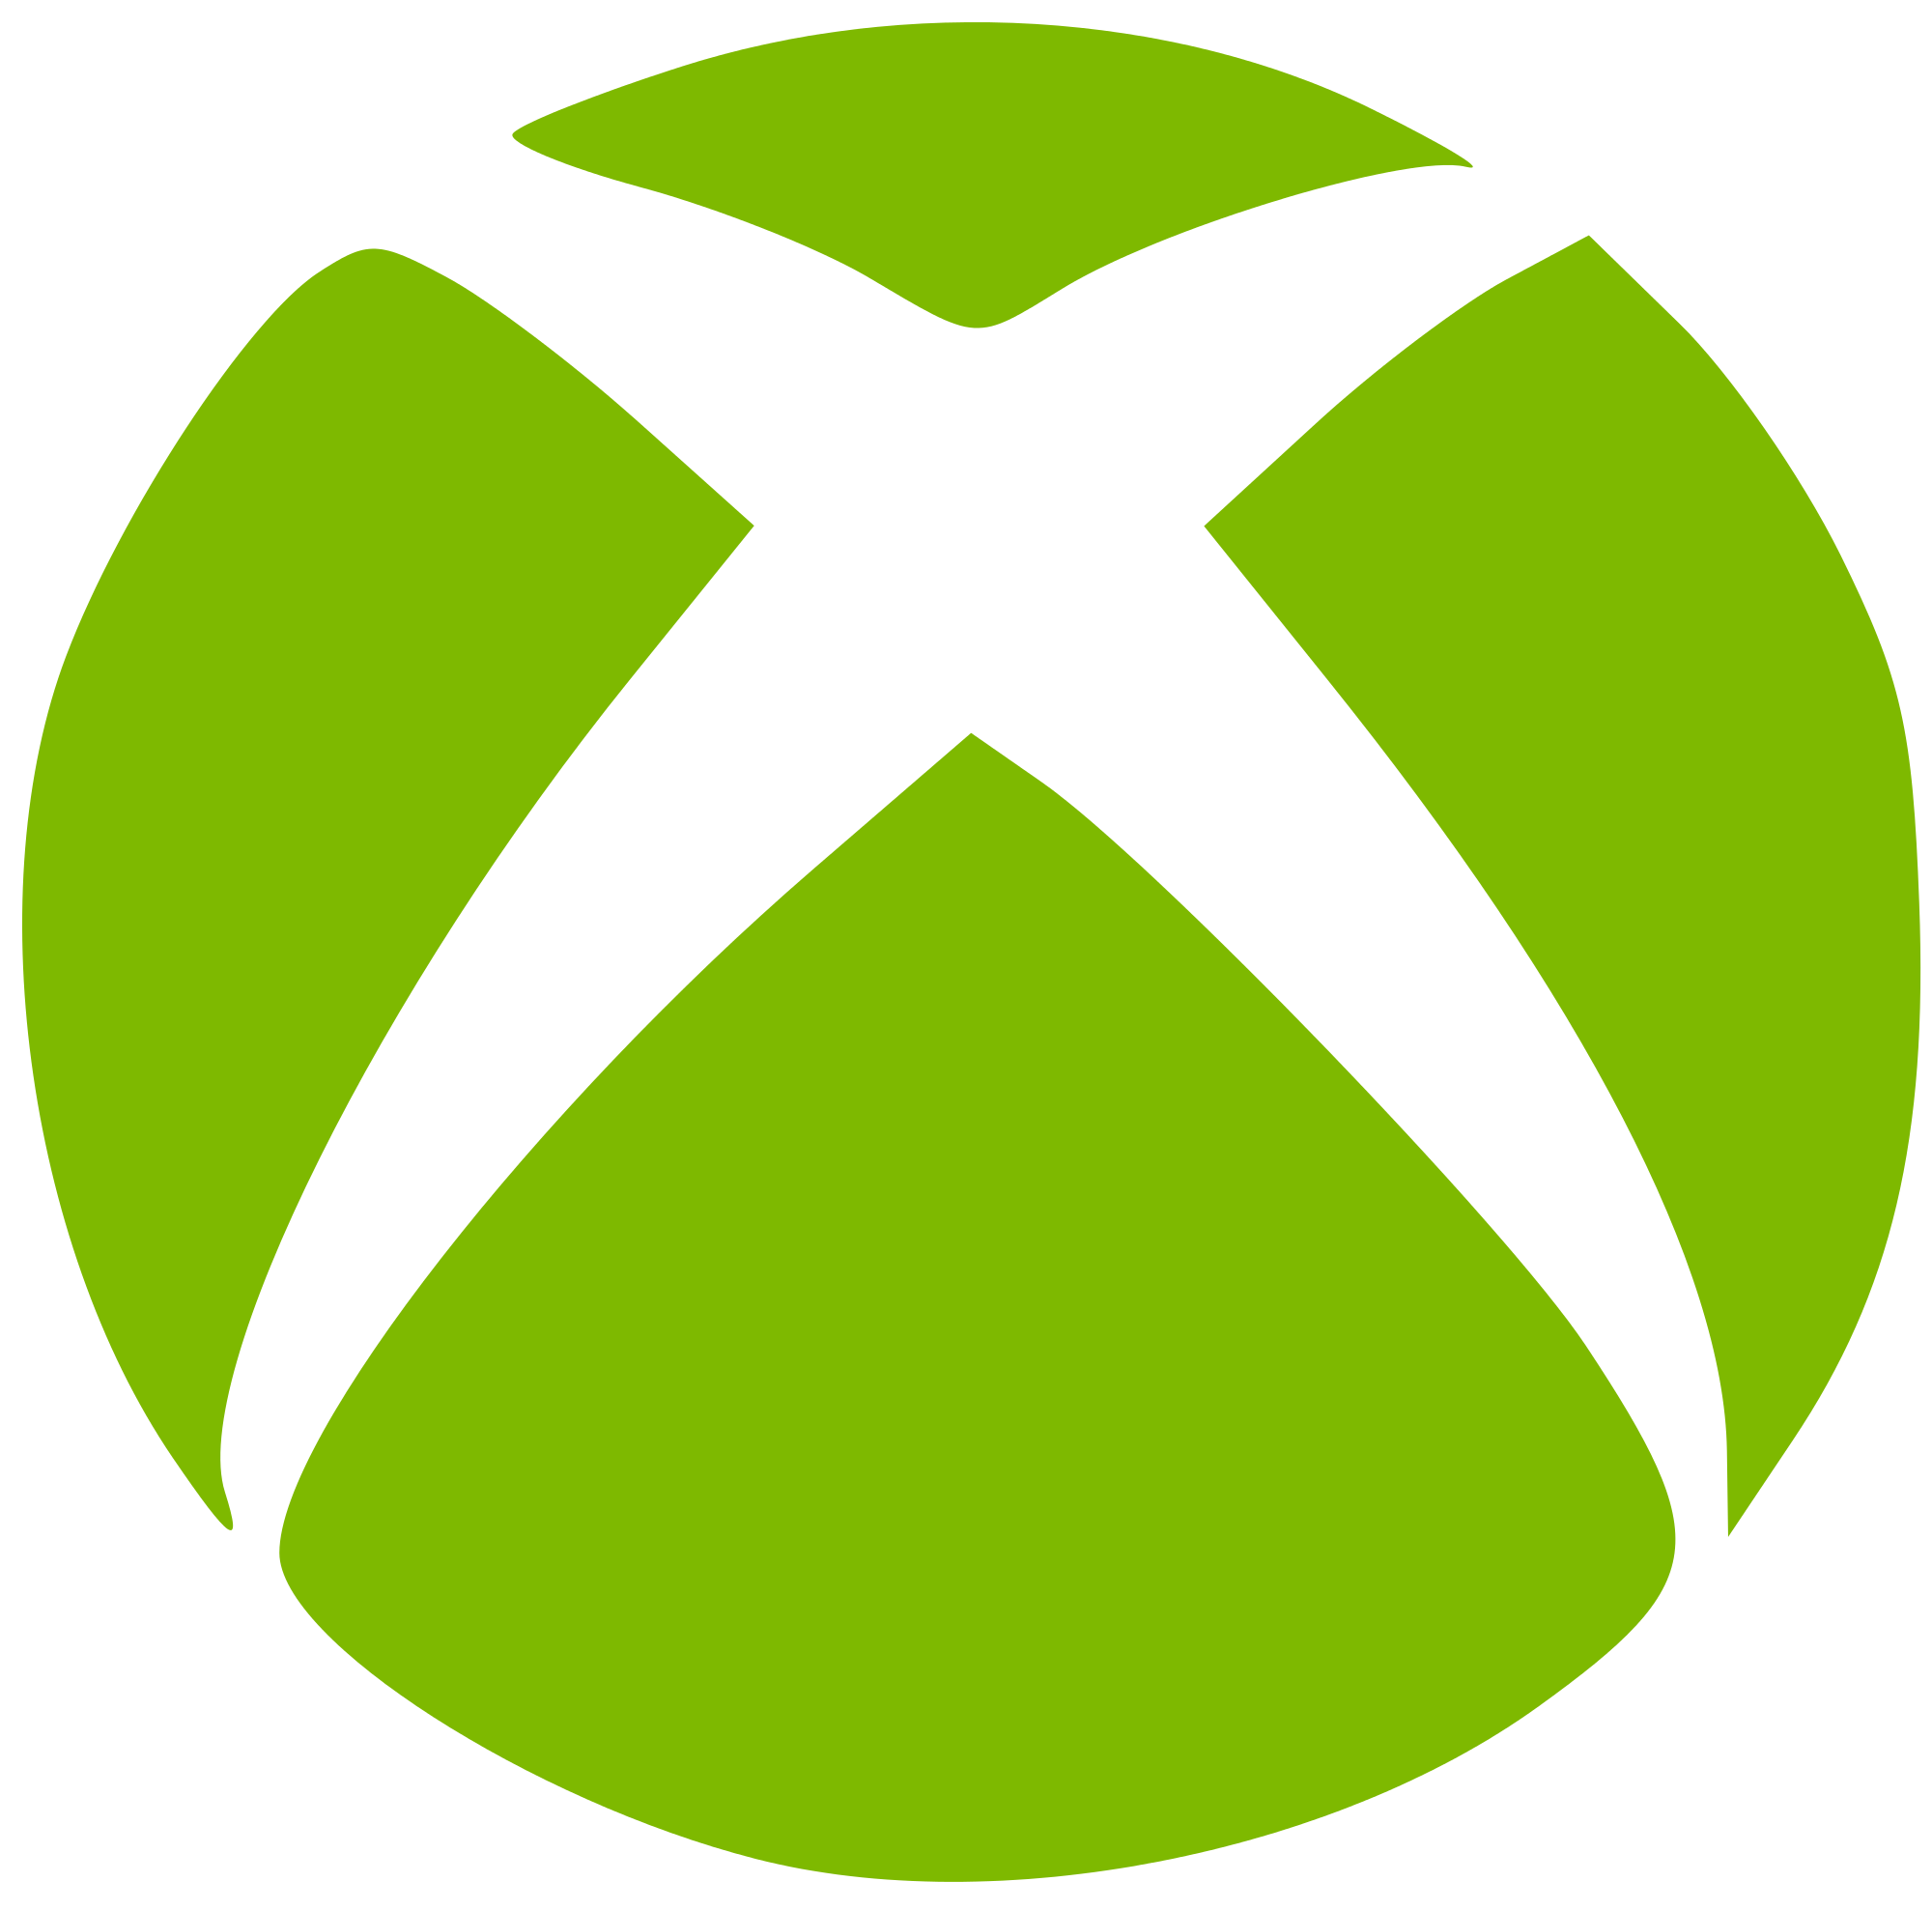 Xbox Logo - File:Xbox logo 2012 cropped.svg - Wikimedia Commons